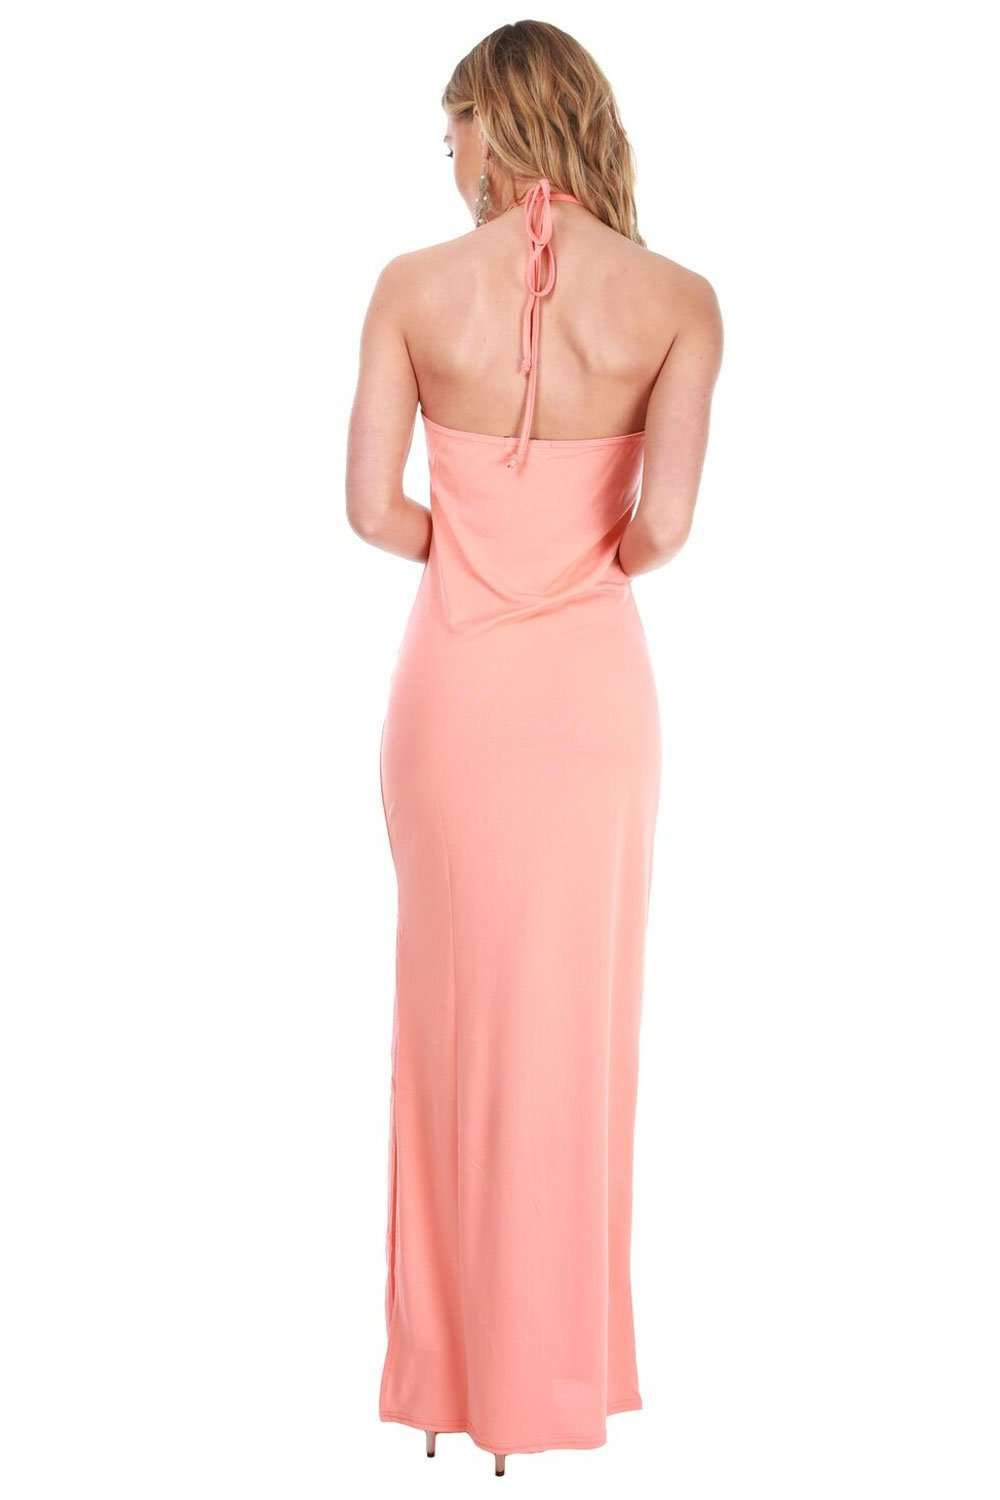 Lorna Side Split Halterneck Maxi Dress - bejealous-com